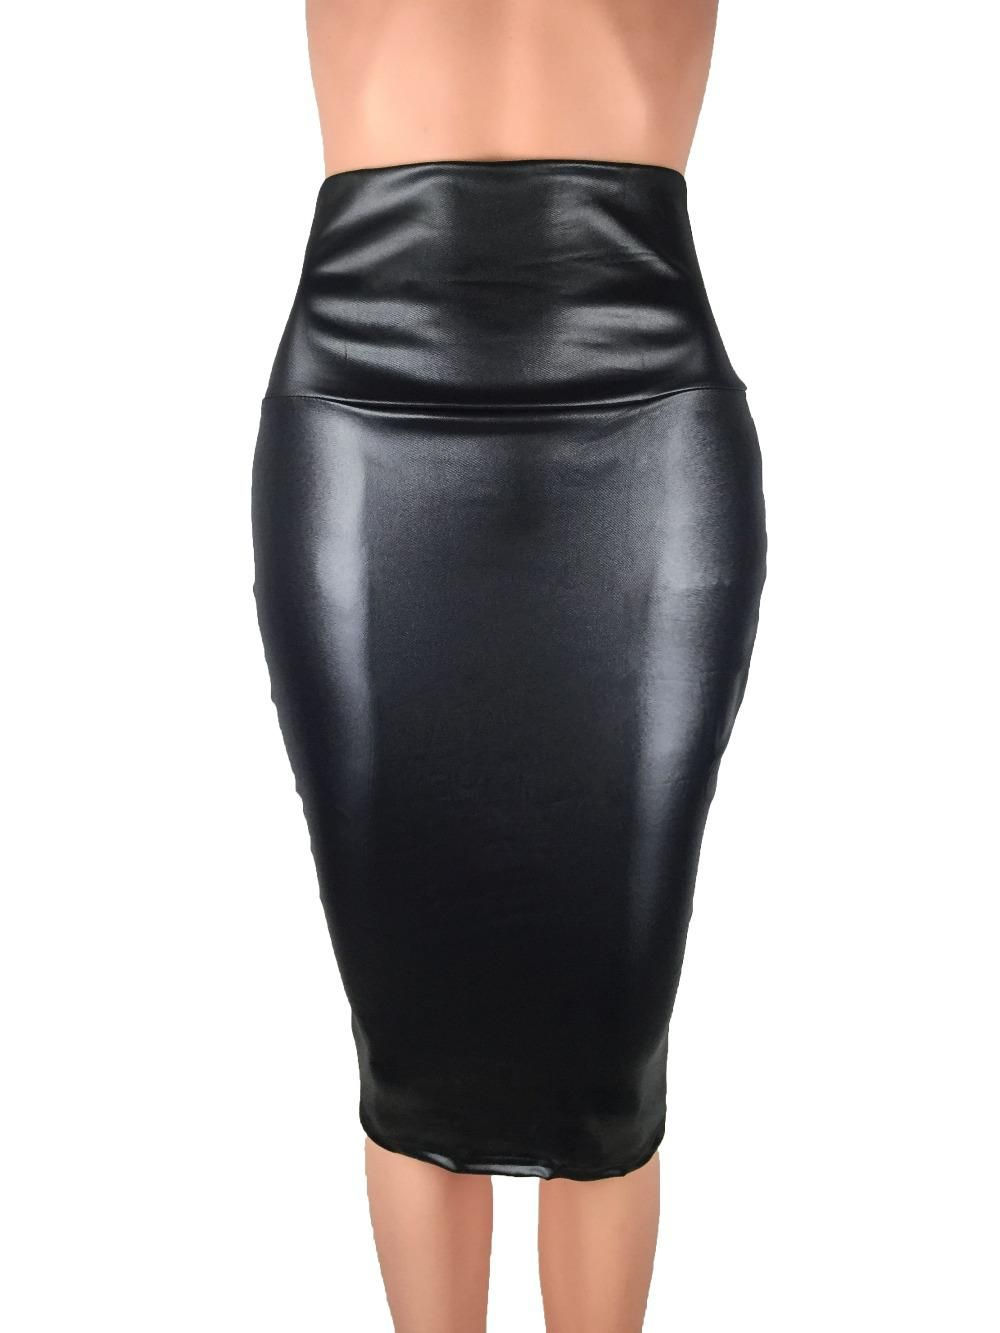 c823ef309c0 Bohocotol 2018 pencil faux leather skirt women casual plus size clothing  chic elegant sexy fitness black midi pencil skirts. Yesterday s price  US   9.88 ...